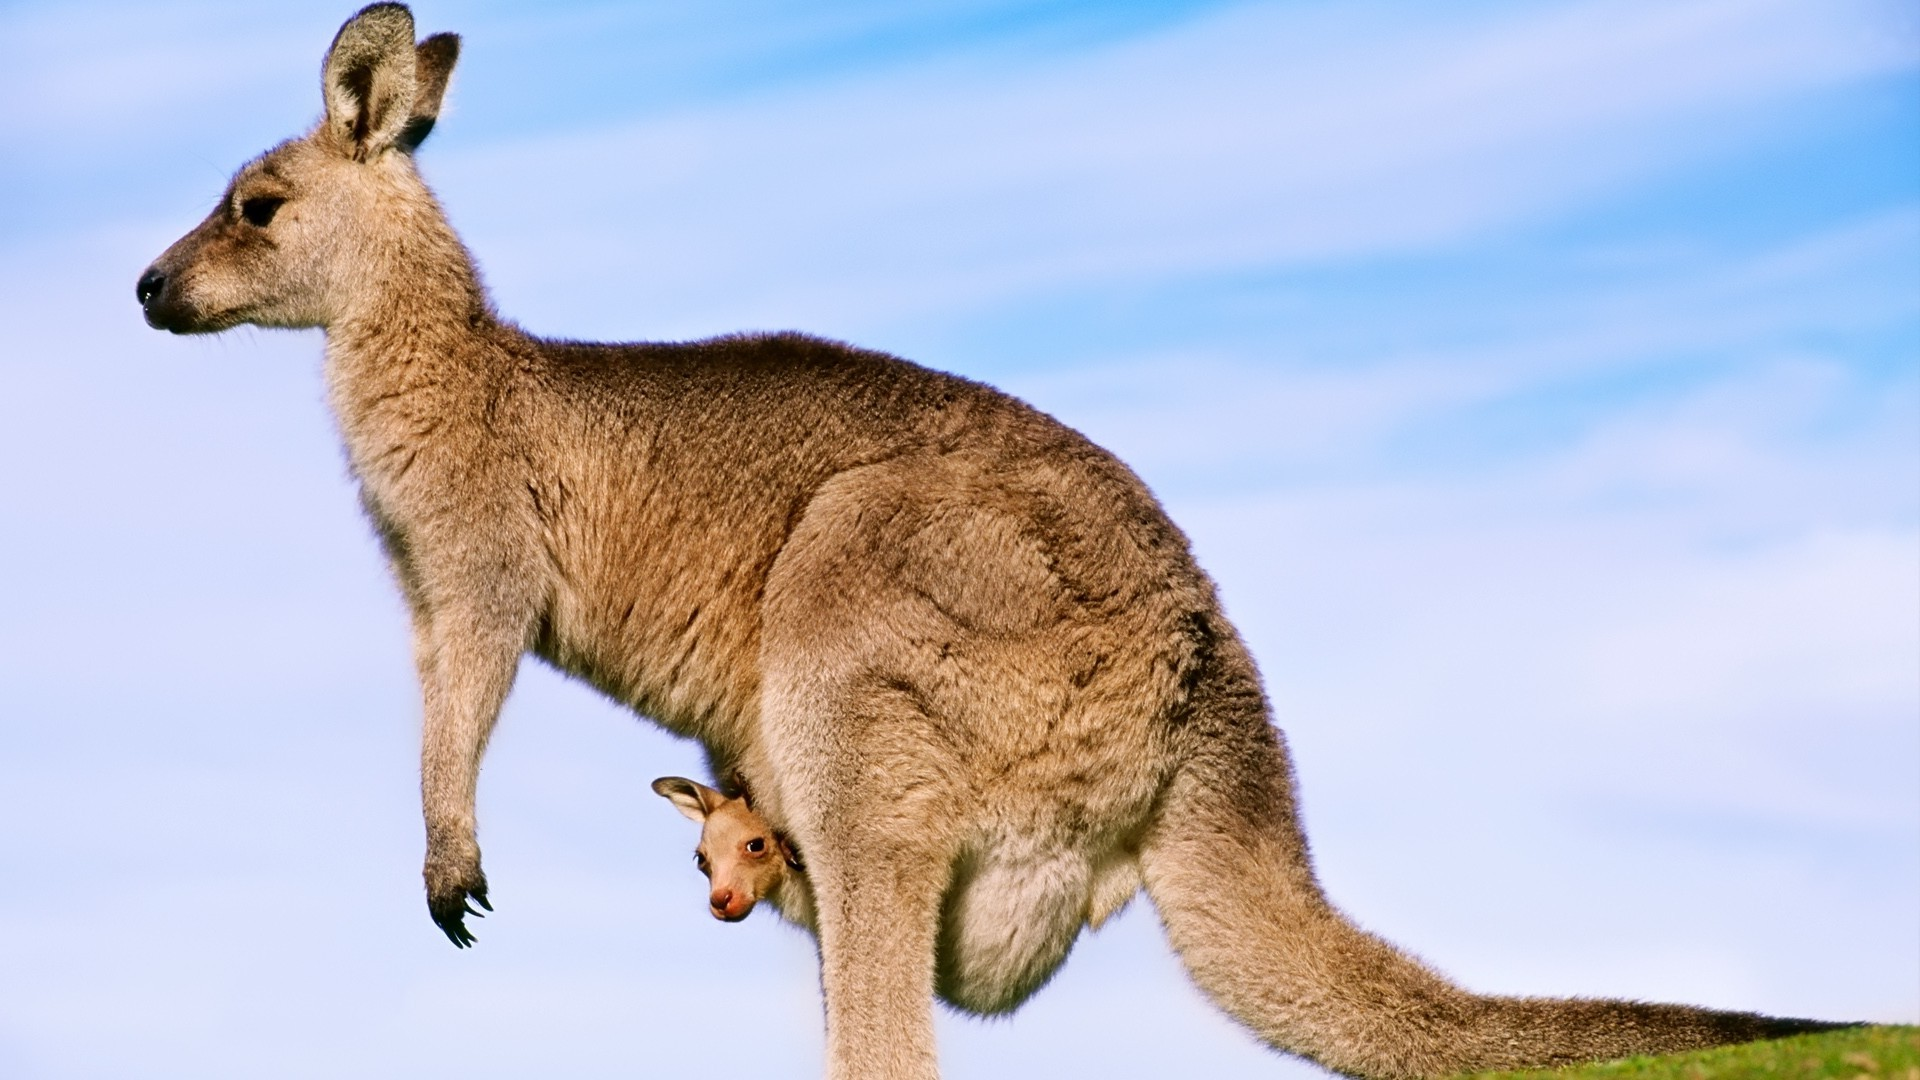 Toy Cars Wallpapers Kangaroos Joey Animals Baby Animals Wallpapers Hd